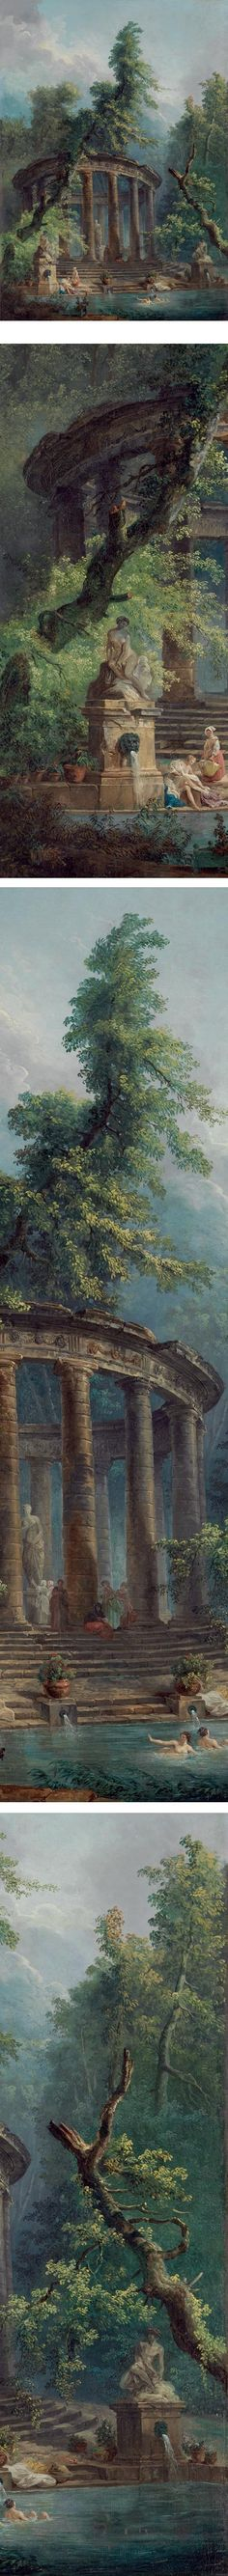 Eye Candy for Today: Hubert Robert architectural fantasy